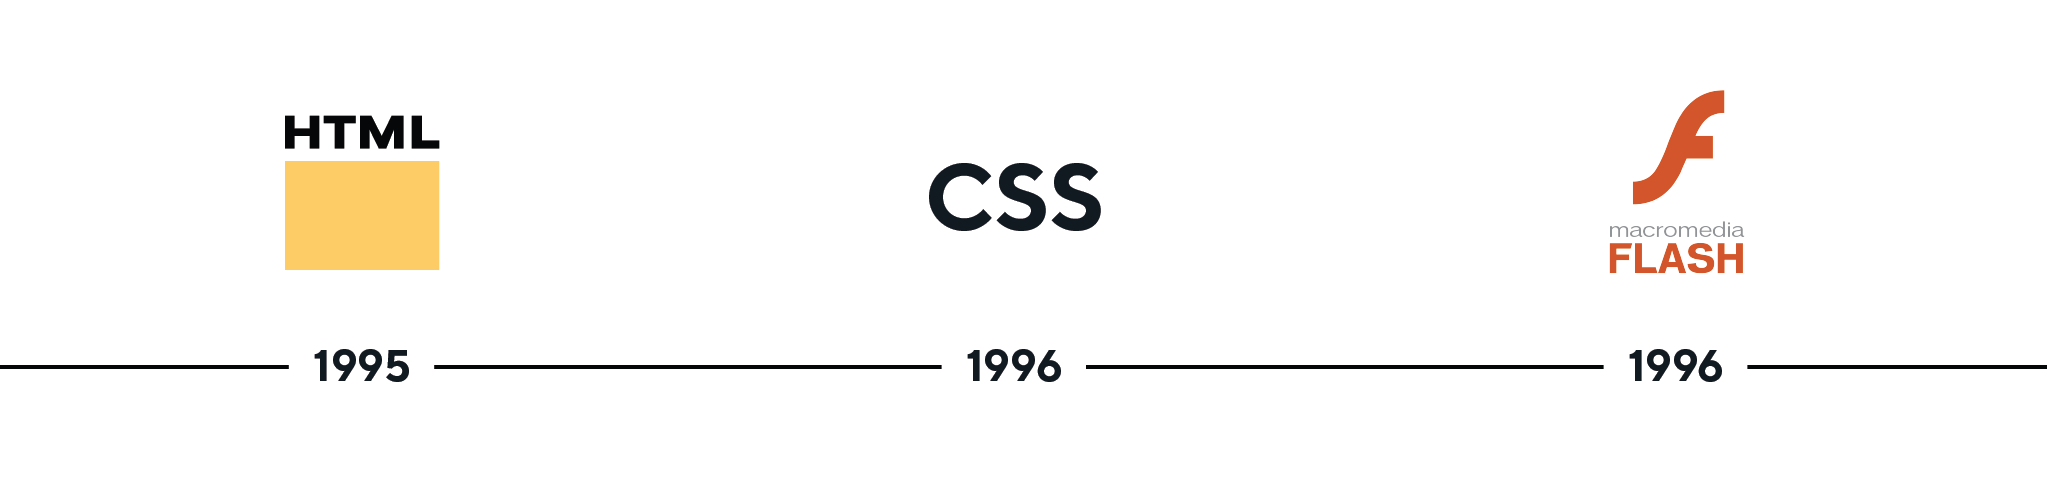 A timeline from 1995 - 1996 and transition from HTML to CSS to macromedia flash